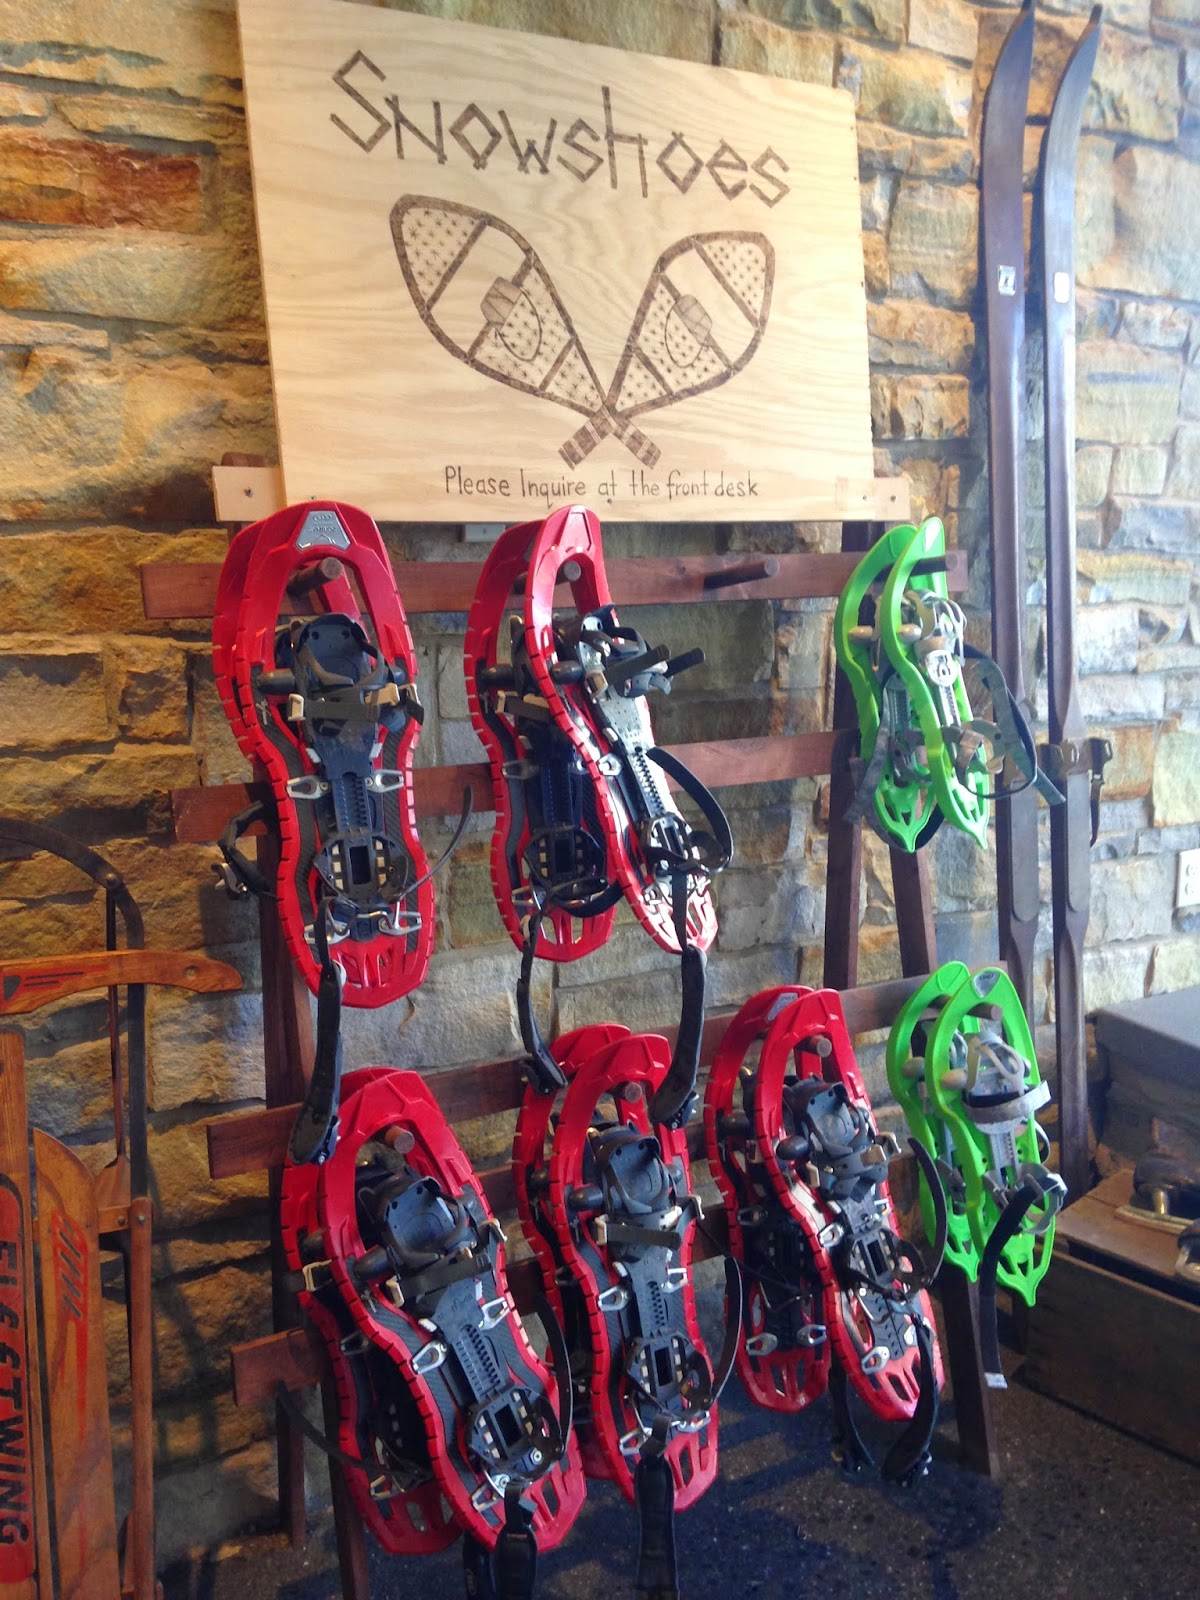 Snowshoes at Hotel Vermont